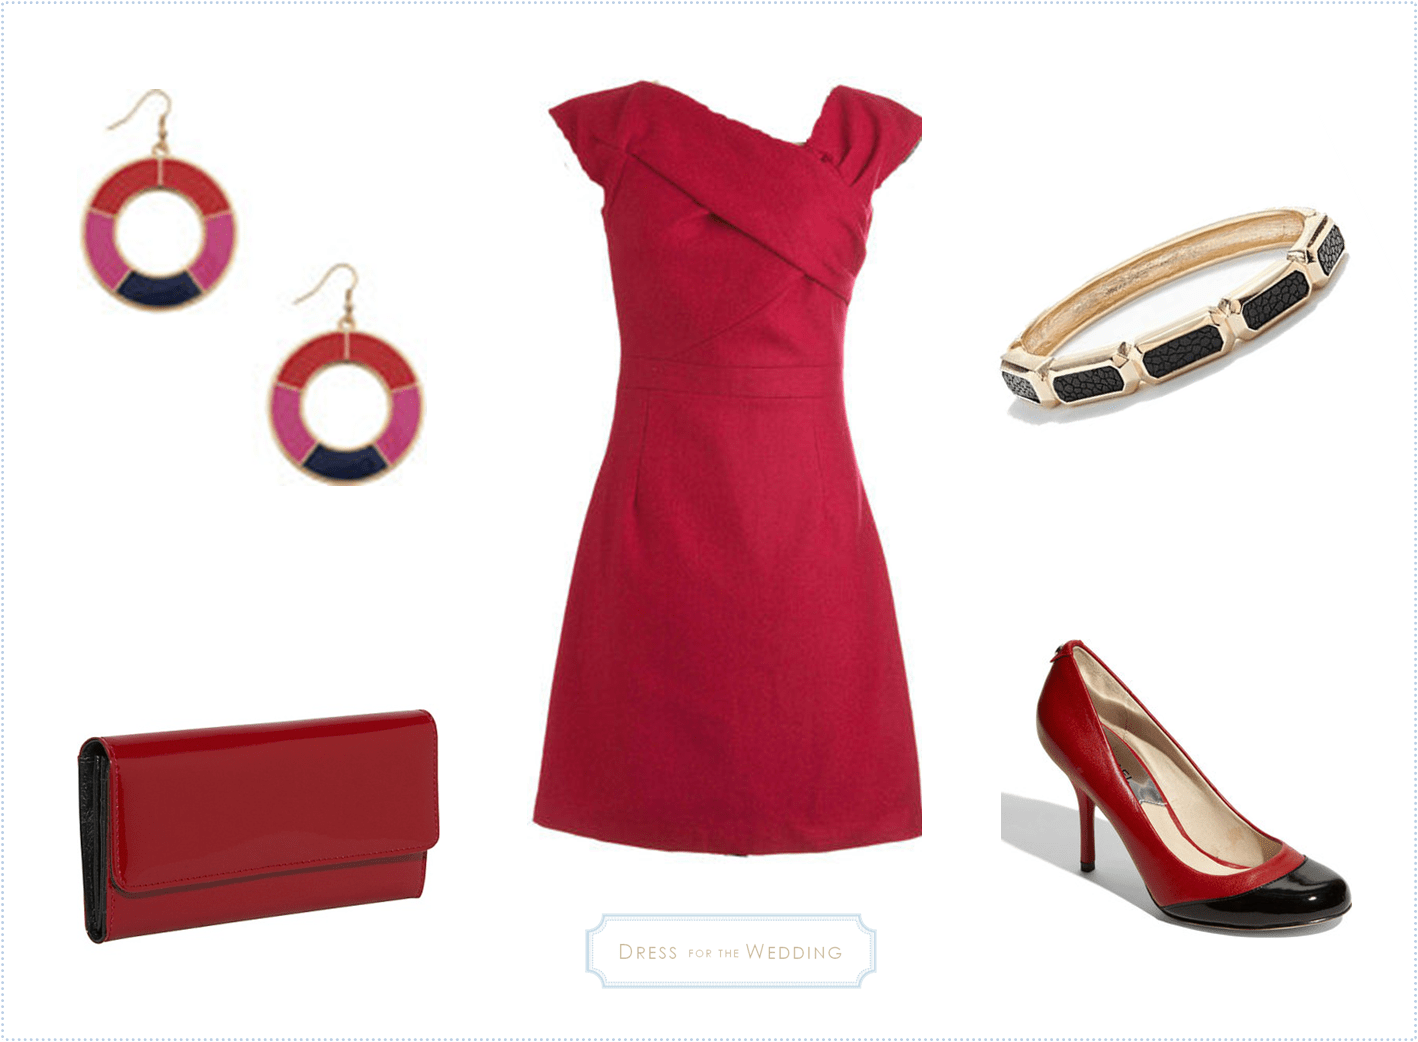 Guest Dresses For A Fall Wedding Red Dress with Black